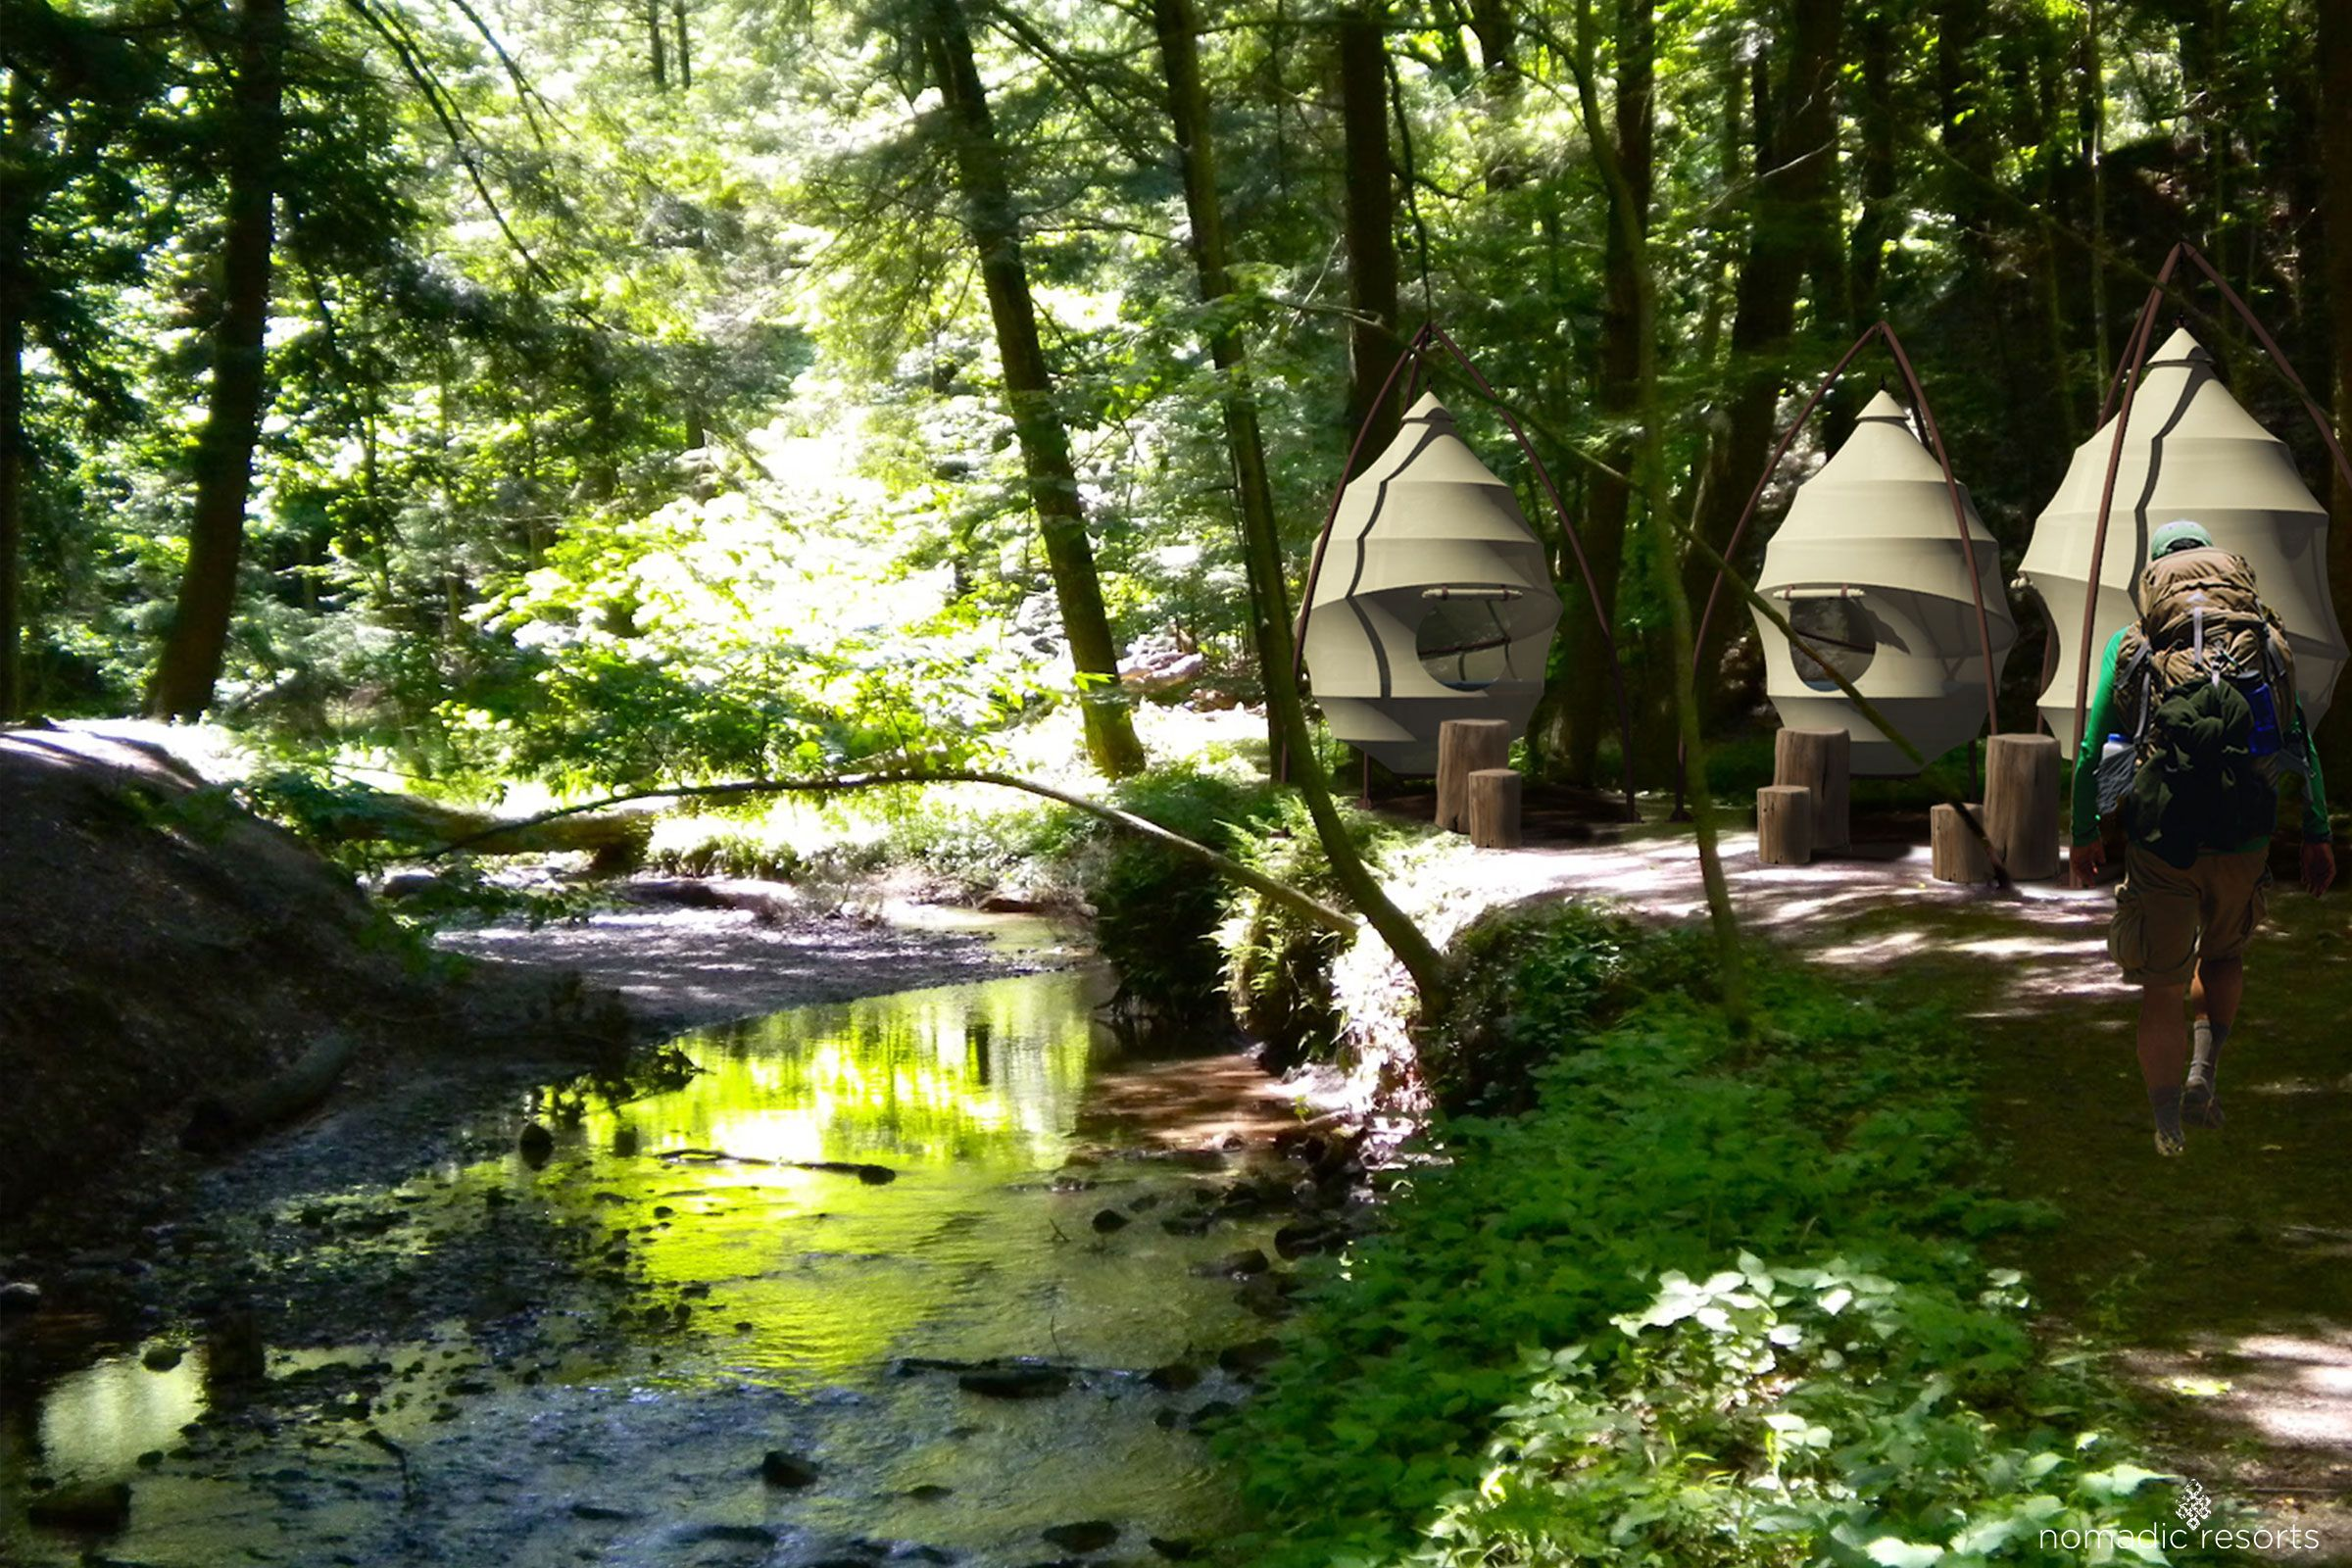 luxury pod, suspended pod, treehouse, seedpod, glamping pod